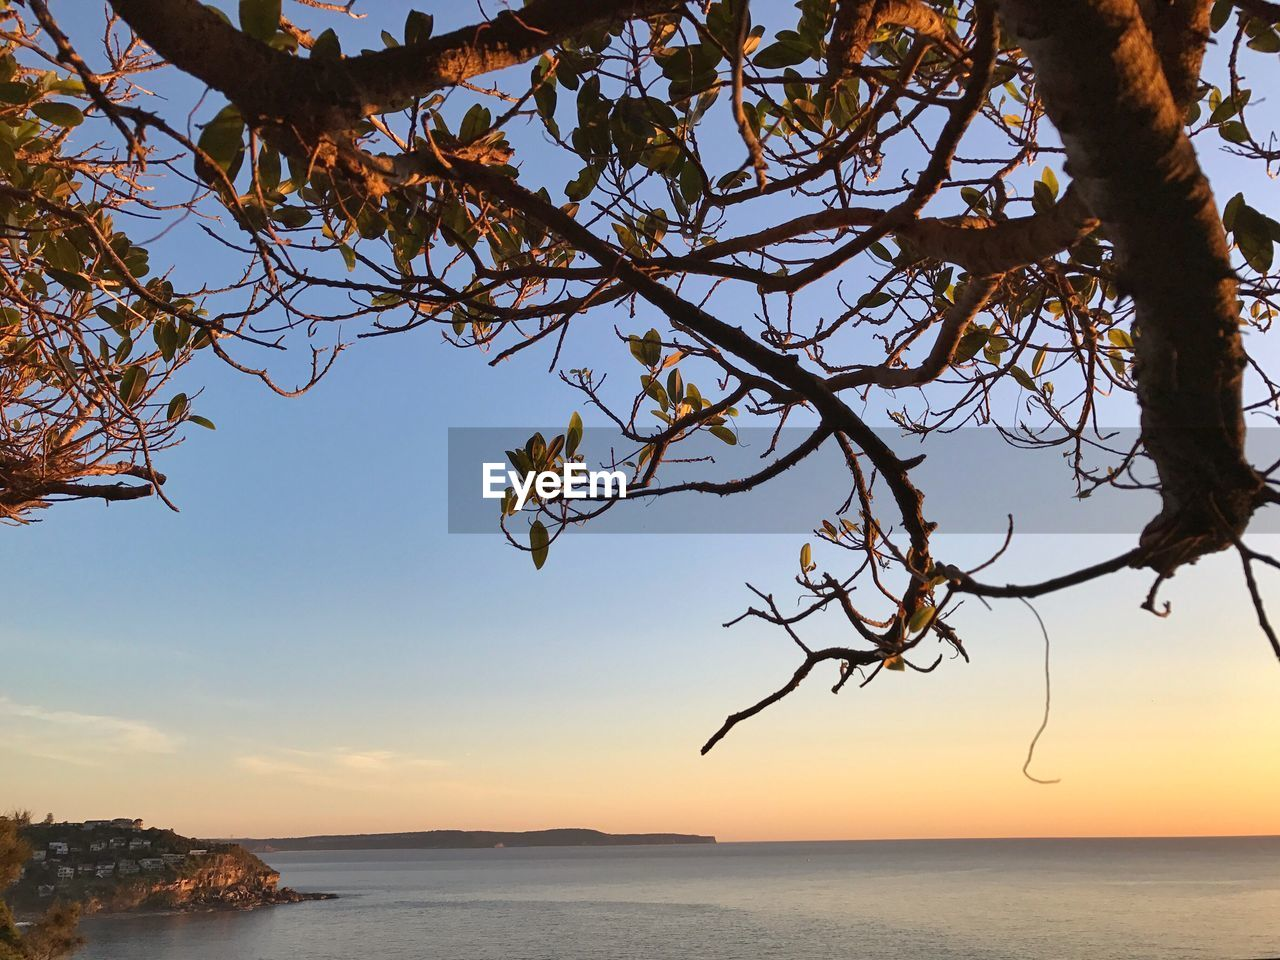 sea, nature, tree, beauty in nature, horizon over water, water, scenics, tranquility, sky, branch, tranquil scene, outdoors, no people, sunset, clear sky, day